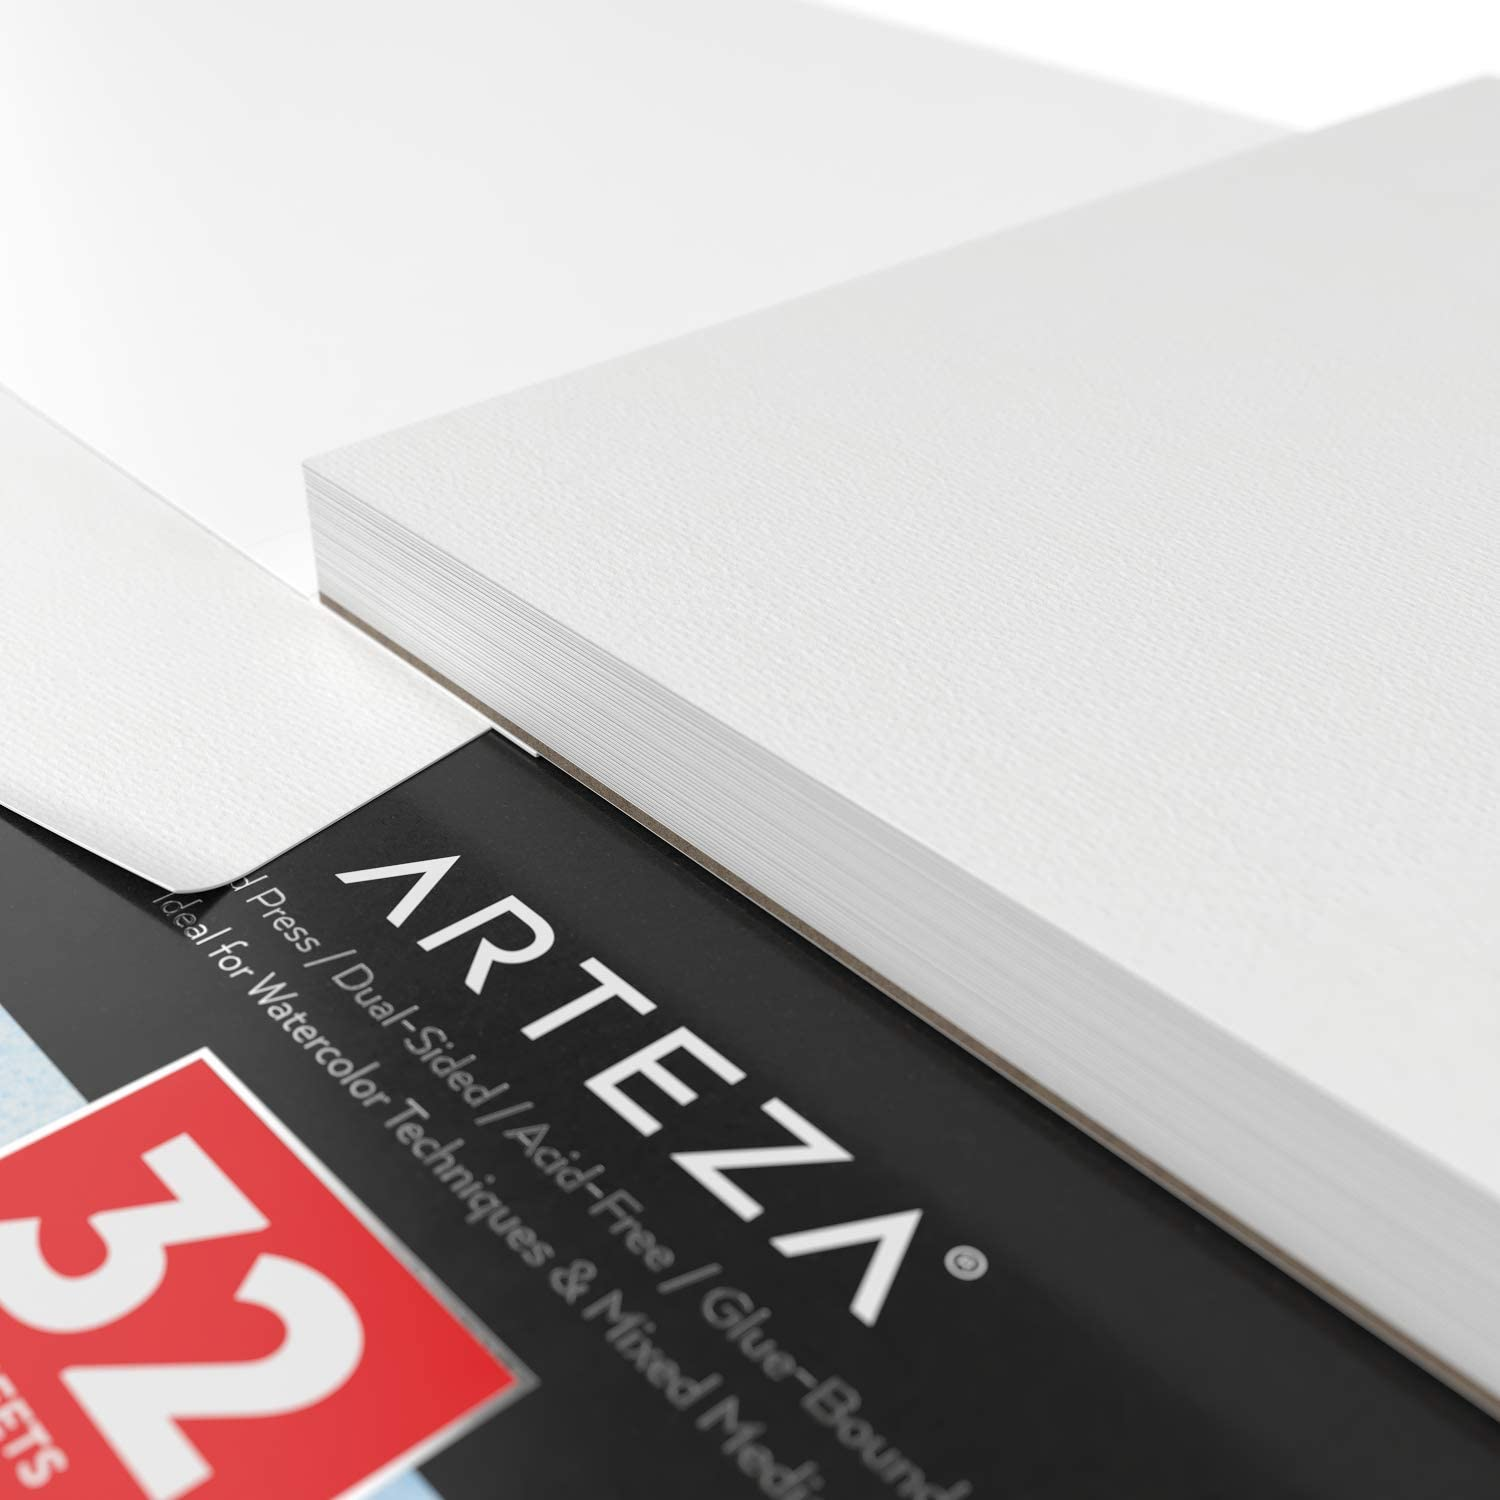 Acid Free Paper Ideal for Watercolor Techniques and Mixed Media ARTEZA 9x12 Expert Watercolor Pad 140lb//300gsm 32 Sheets Cold Pressed